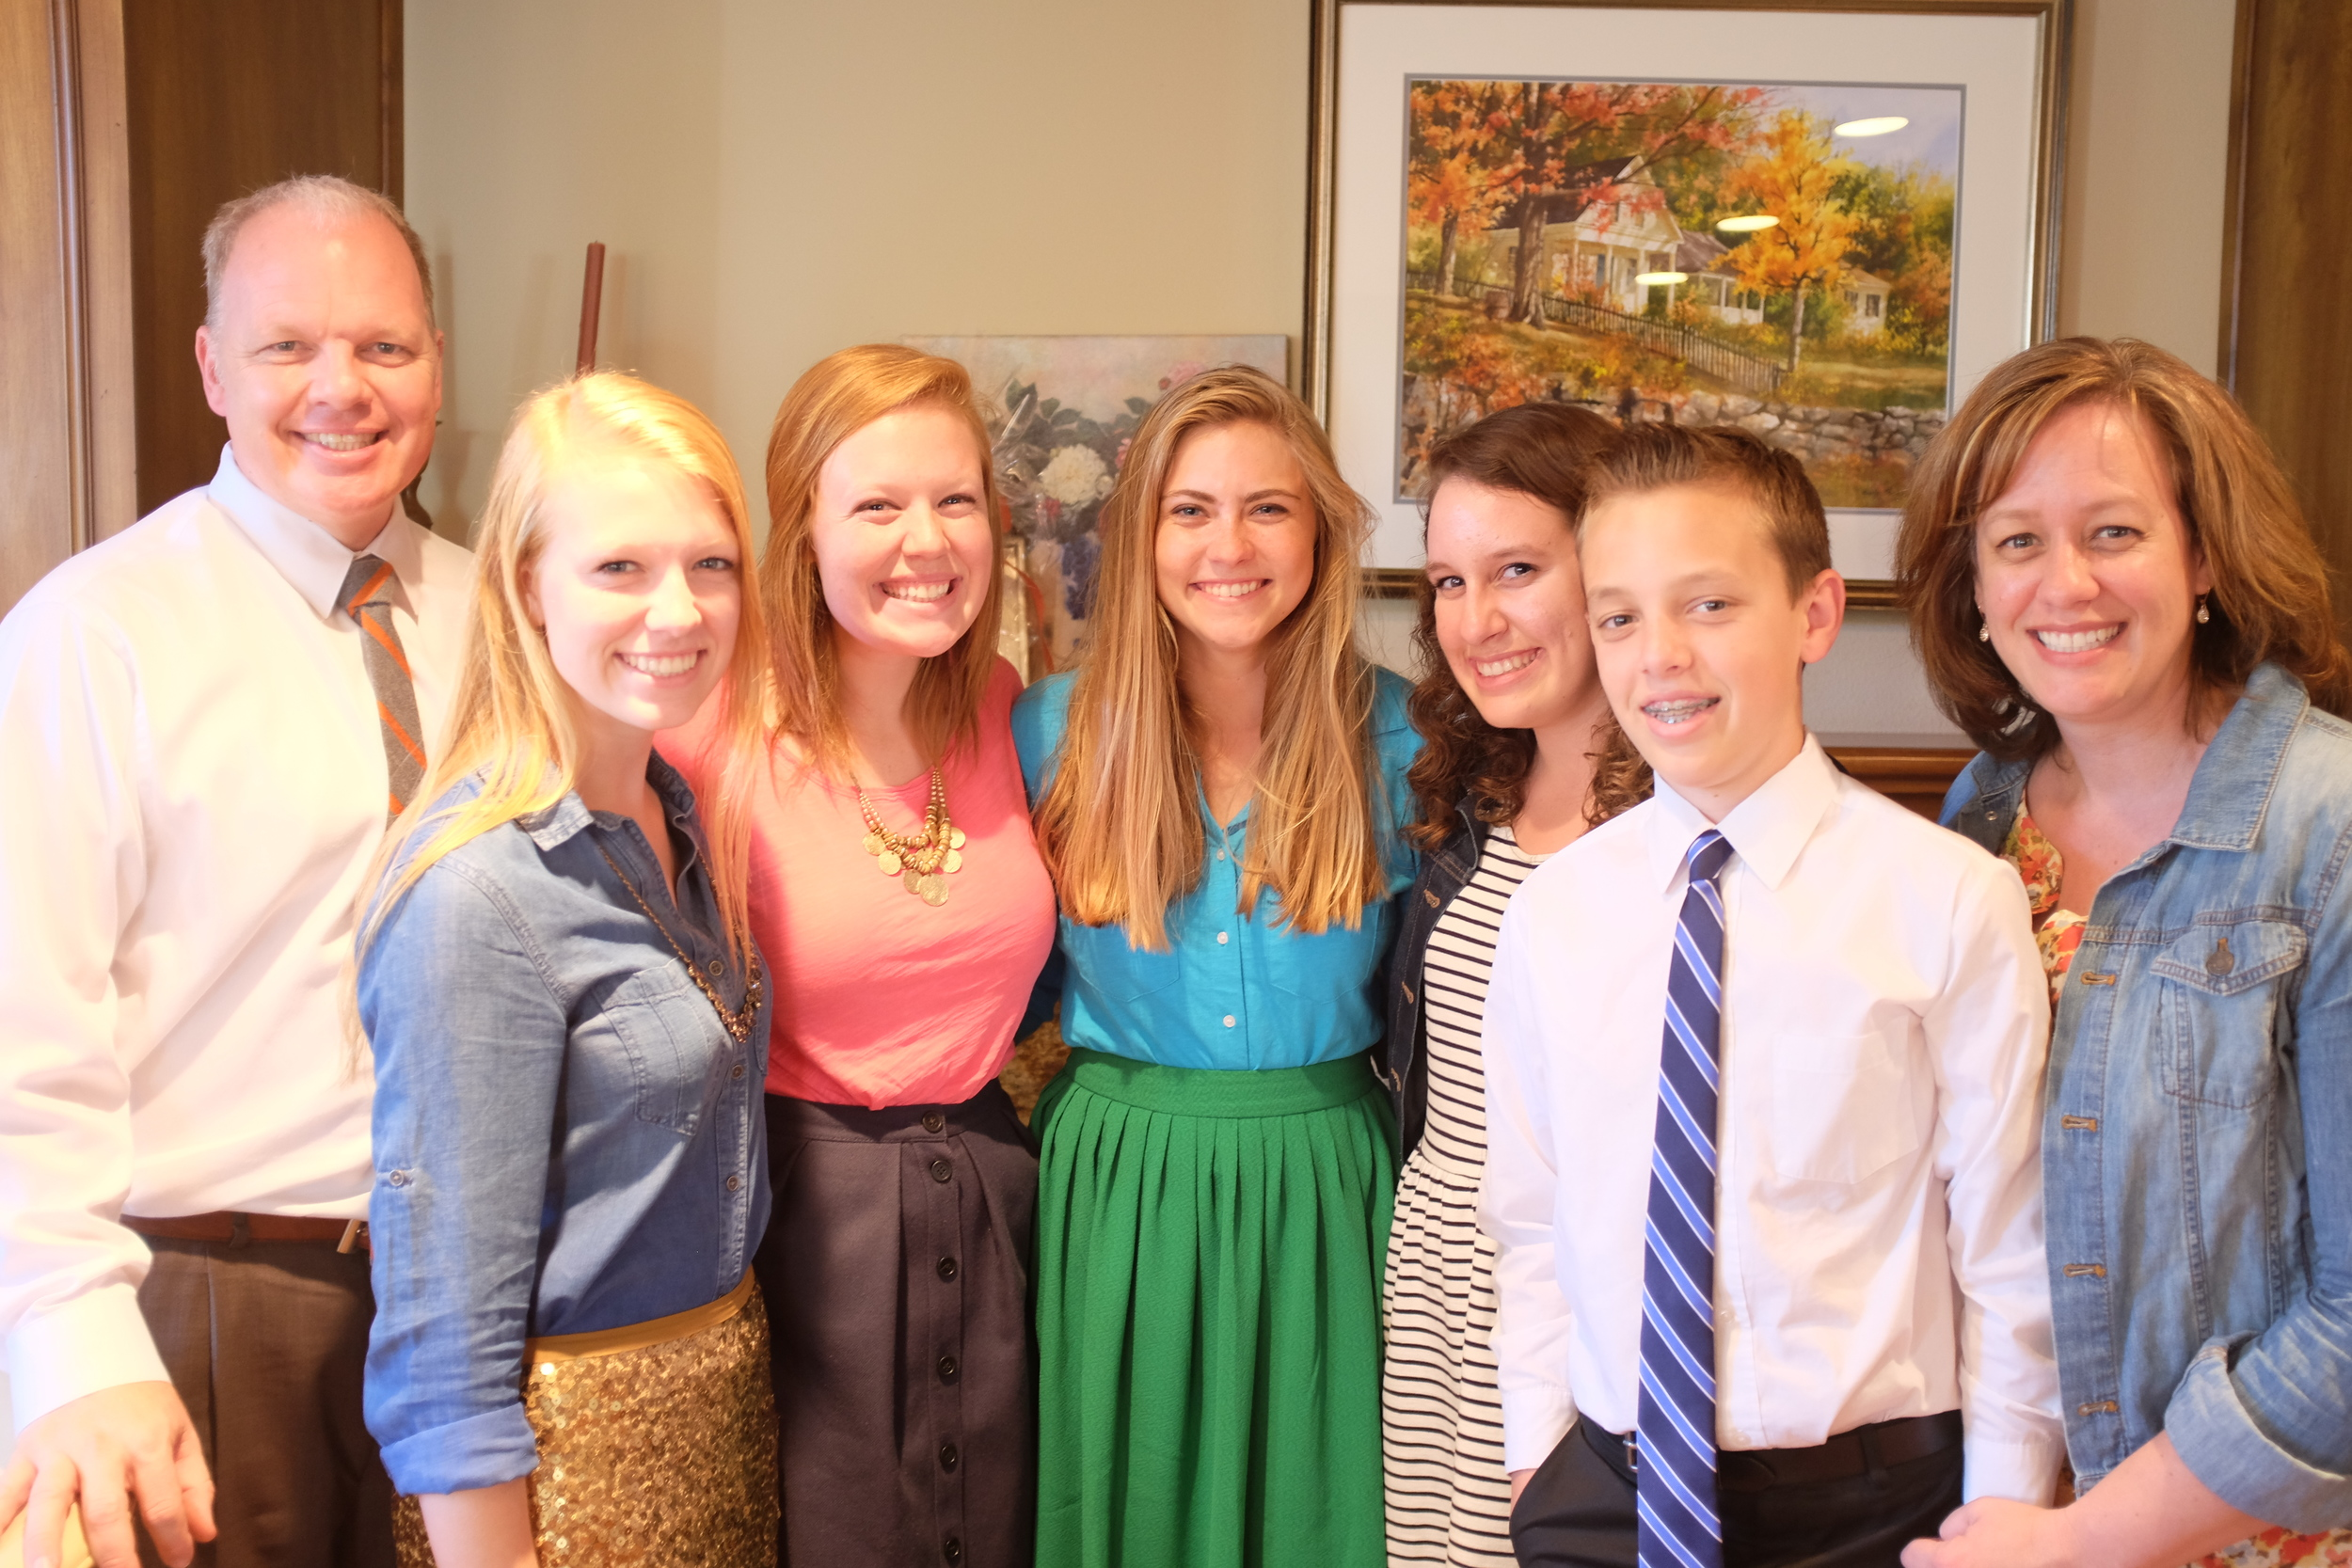 Camille will miss the Huisken Family!